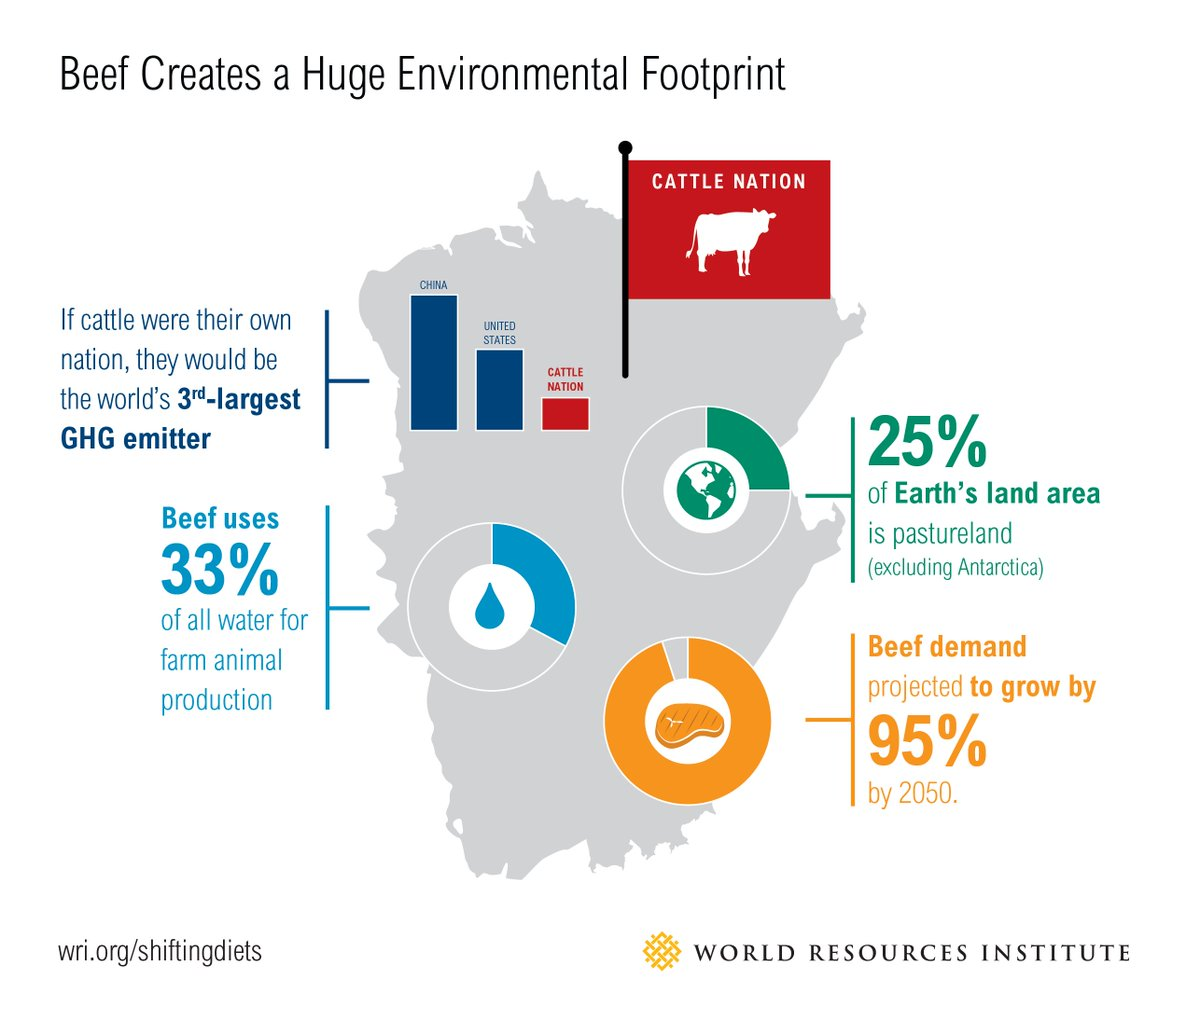 if cattle were their own nation they would be the worlds 3rd highest ghg